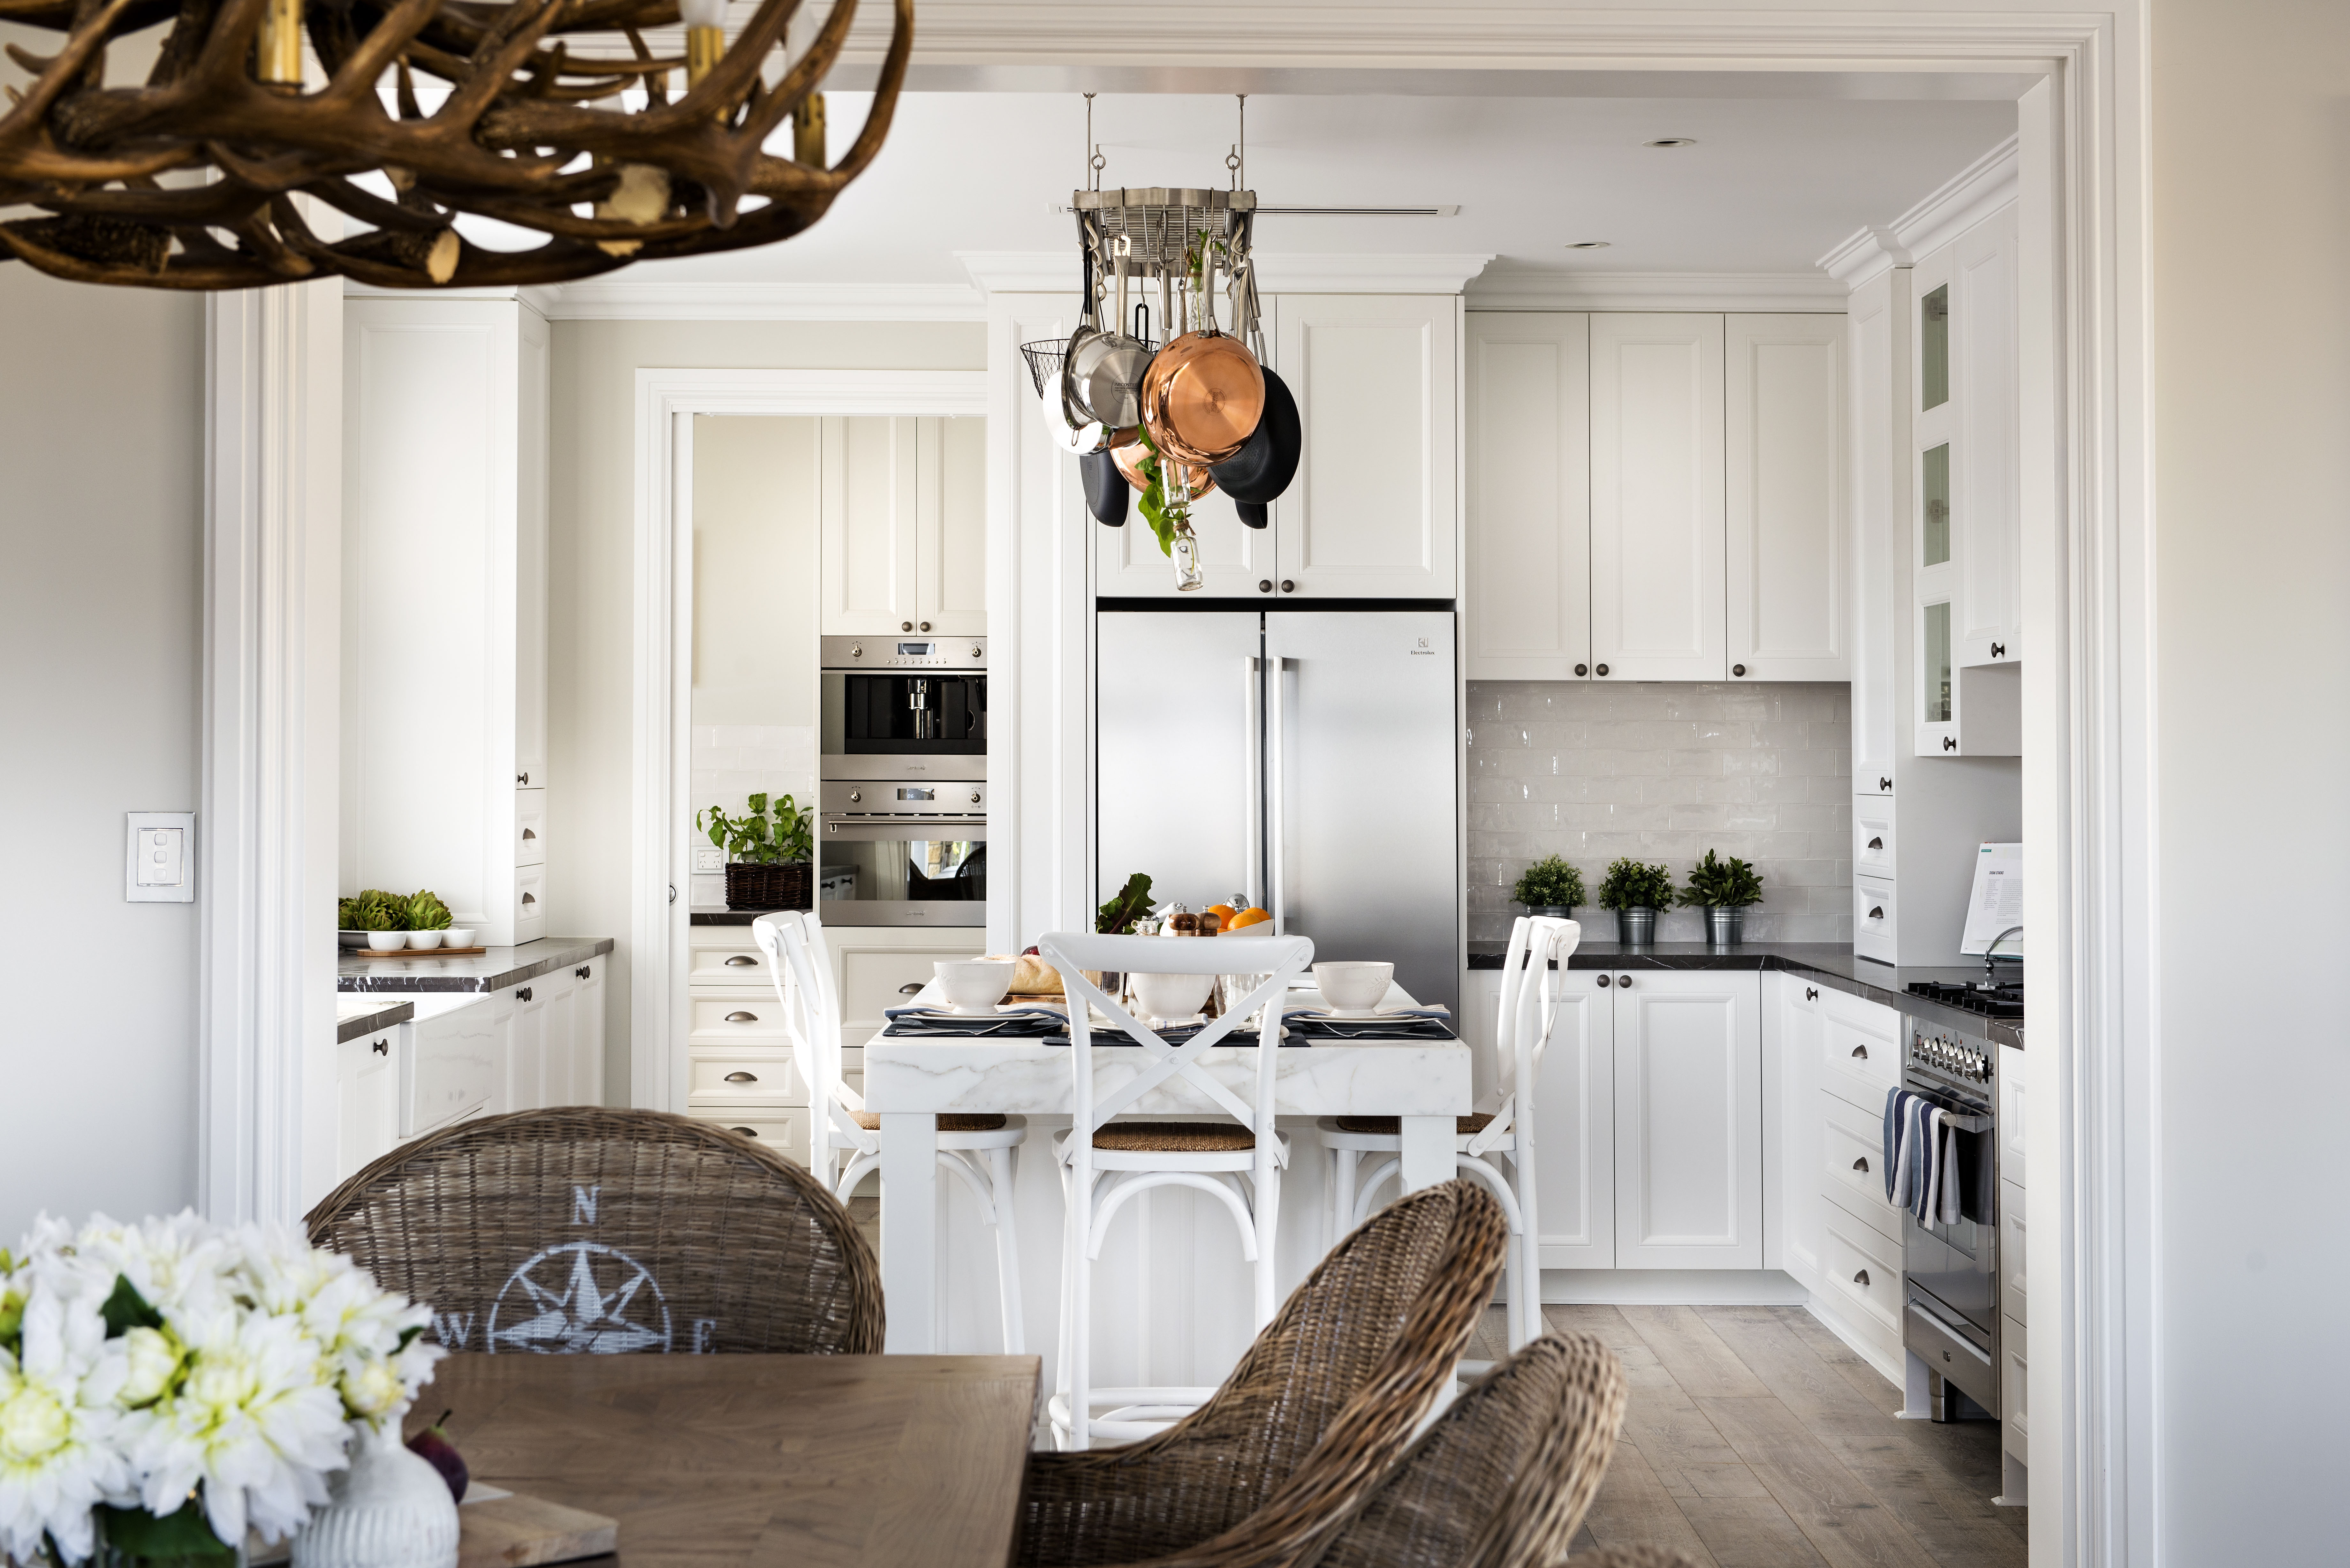 The kitchen is mostly white, with a glossy off-white backsplash. The kitchen is deceptively deep. From this angle, it looks average sized.